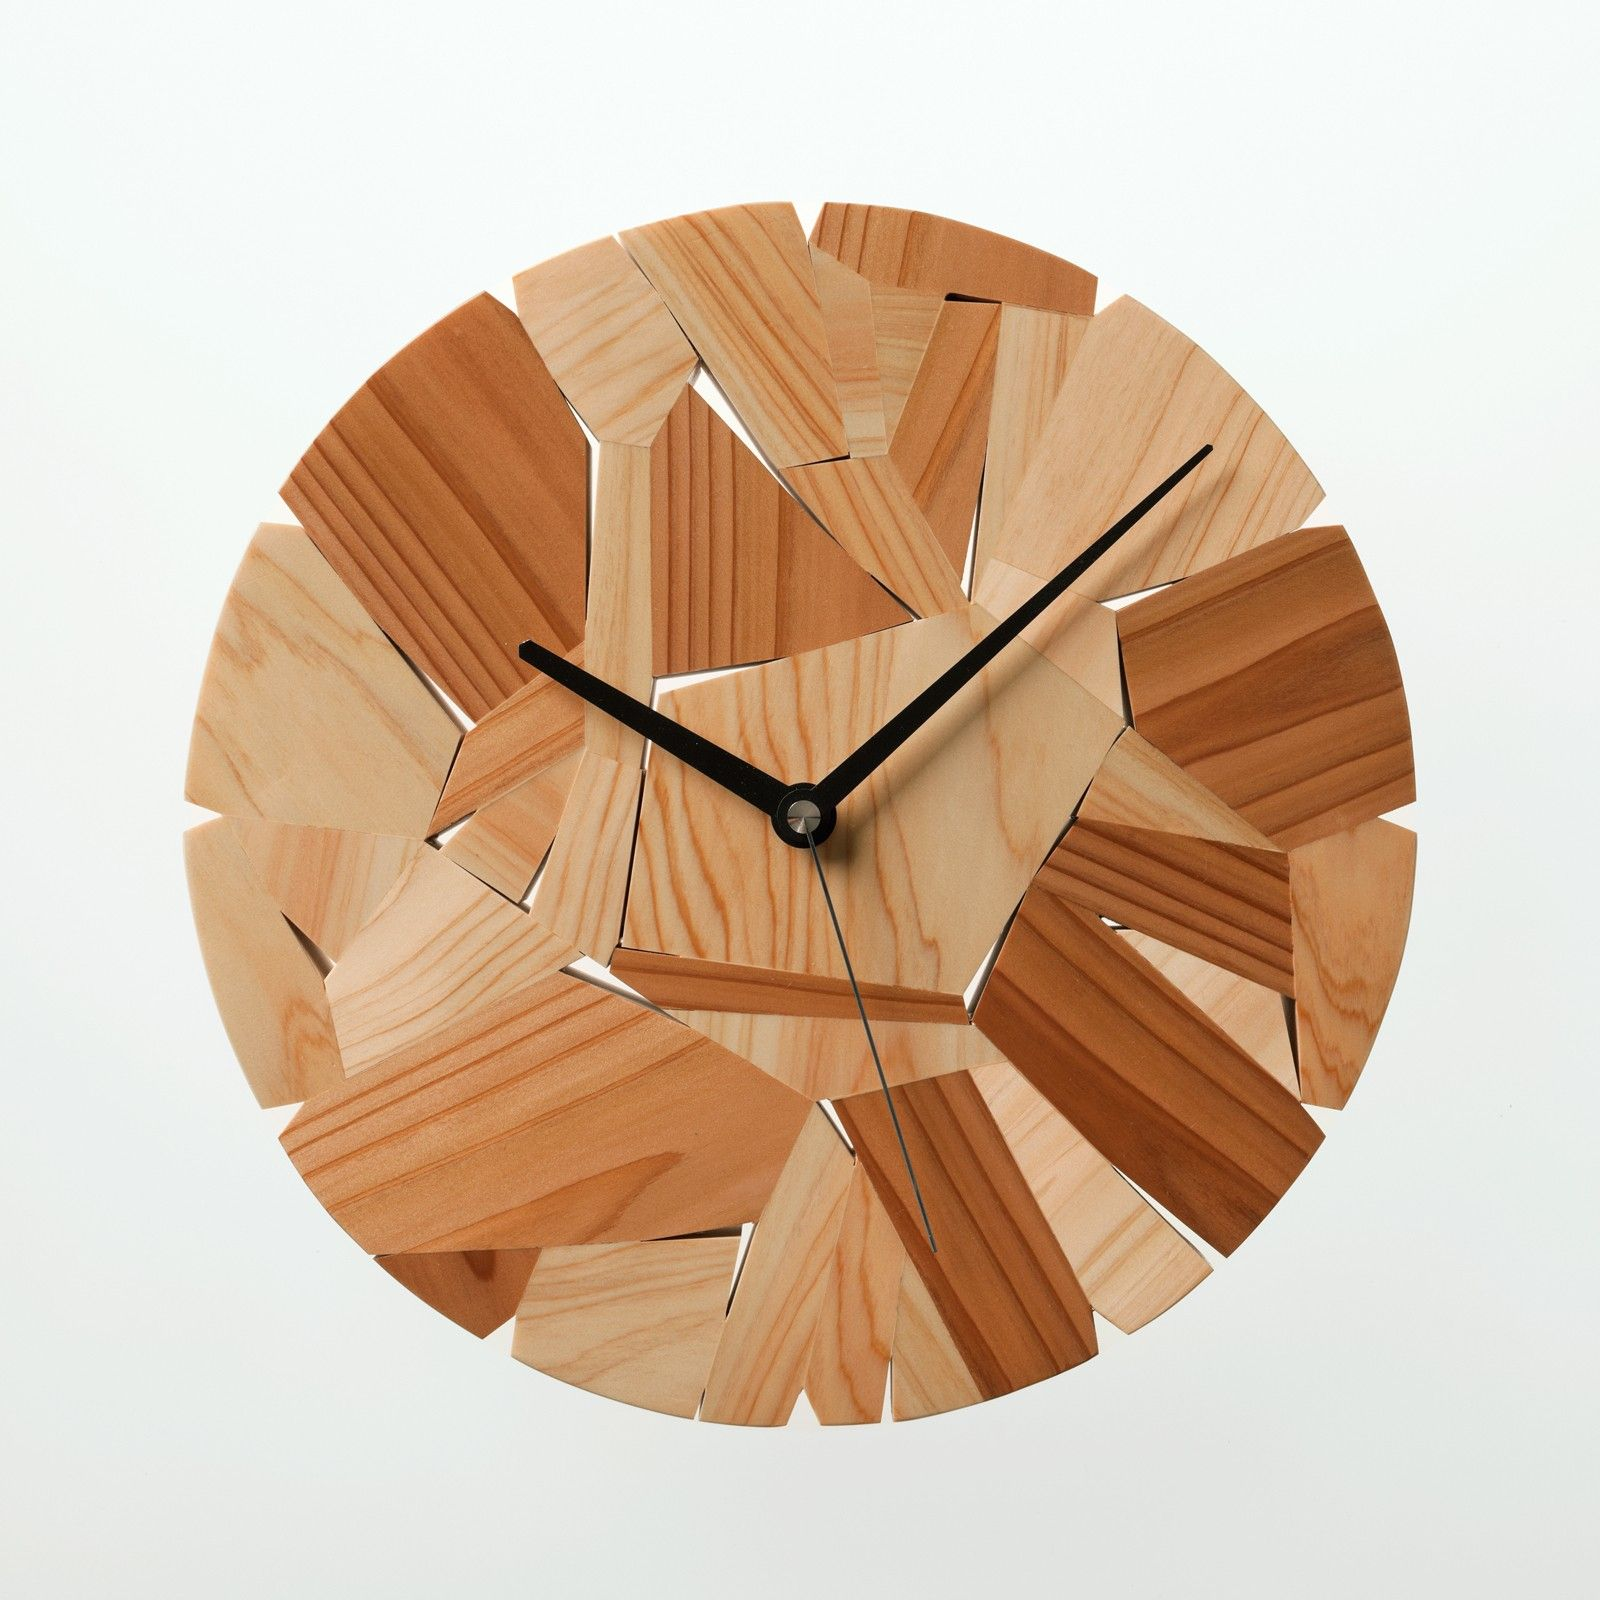 Wood chip clock Designed by Mikiya Kobayashi